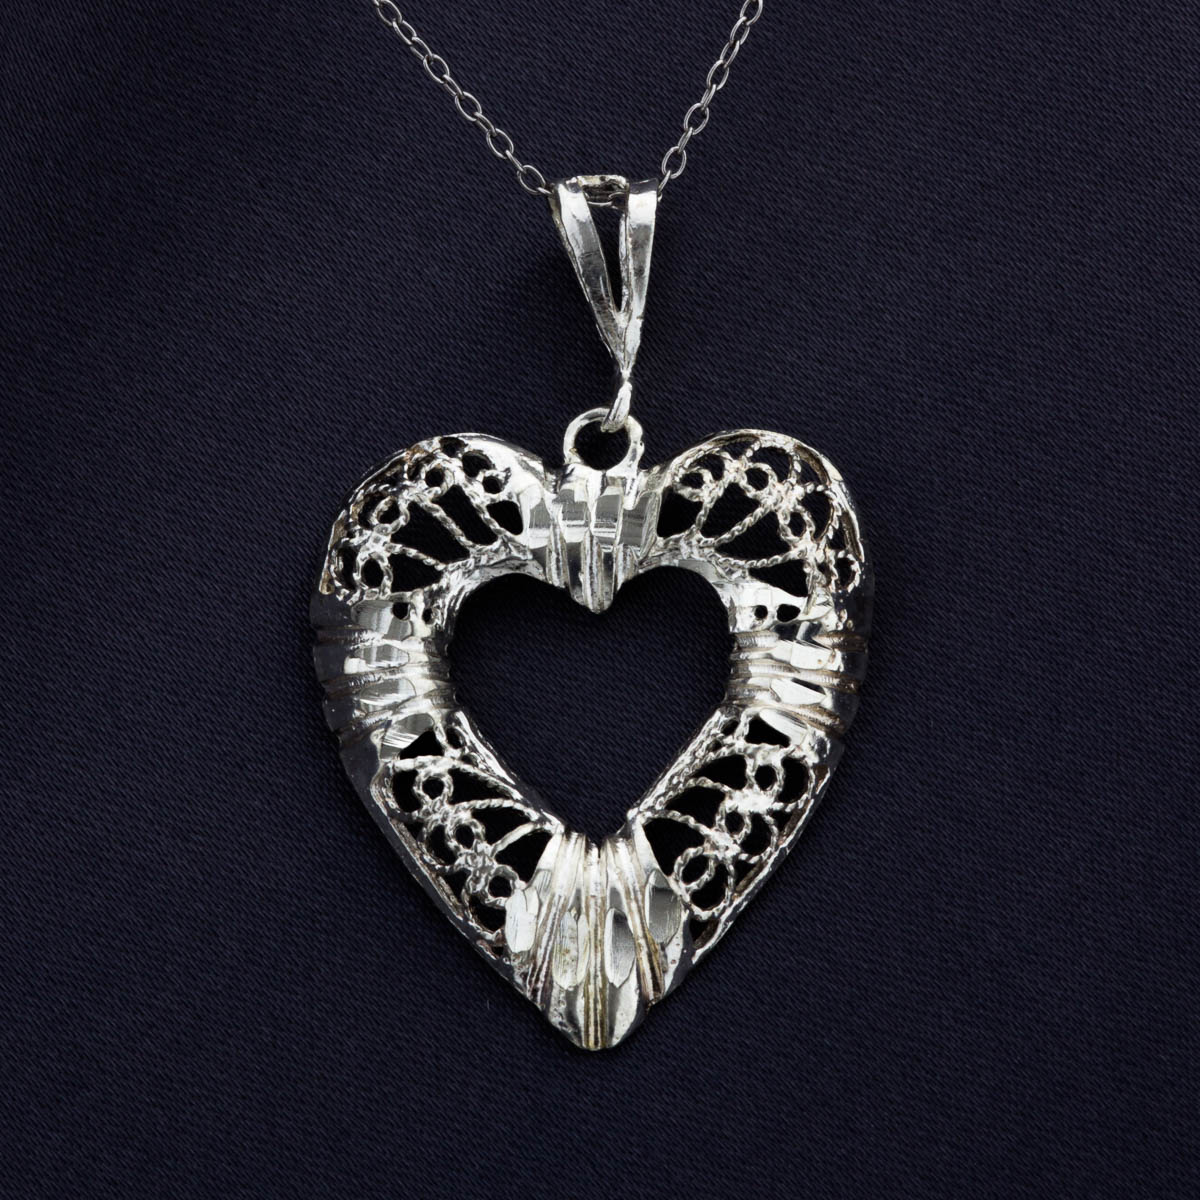 Twisted Wire filigree Design Heart Pendant   Property Room